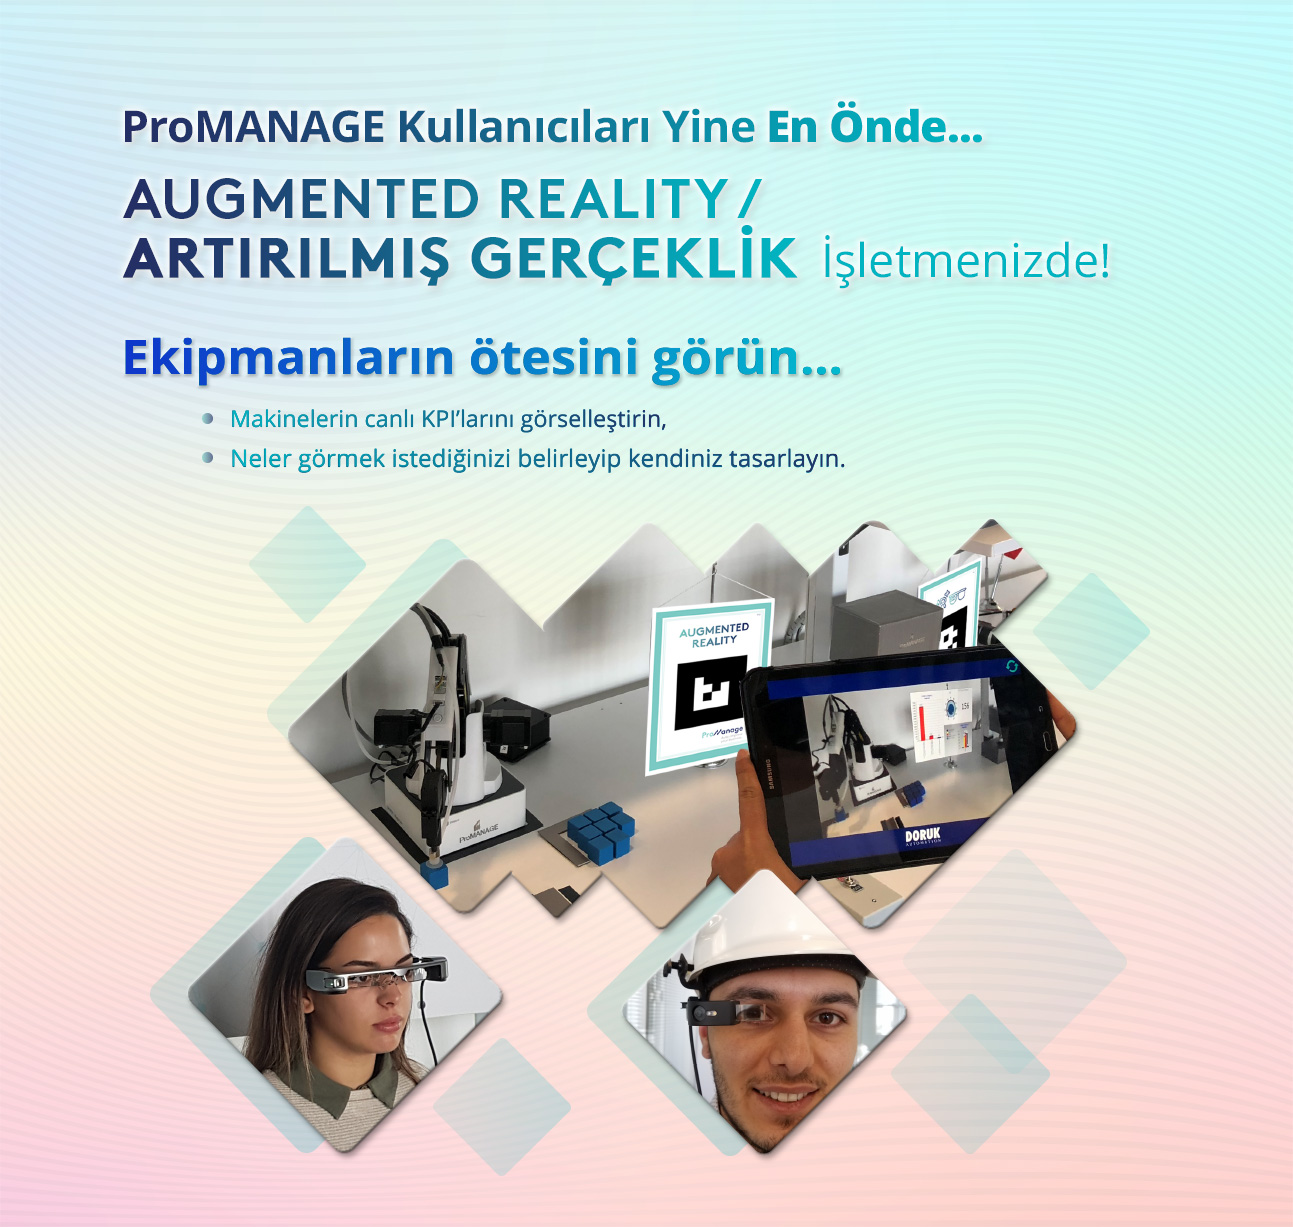 ProMANAGE Augmented Reality